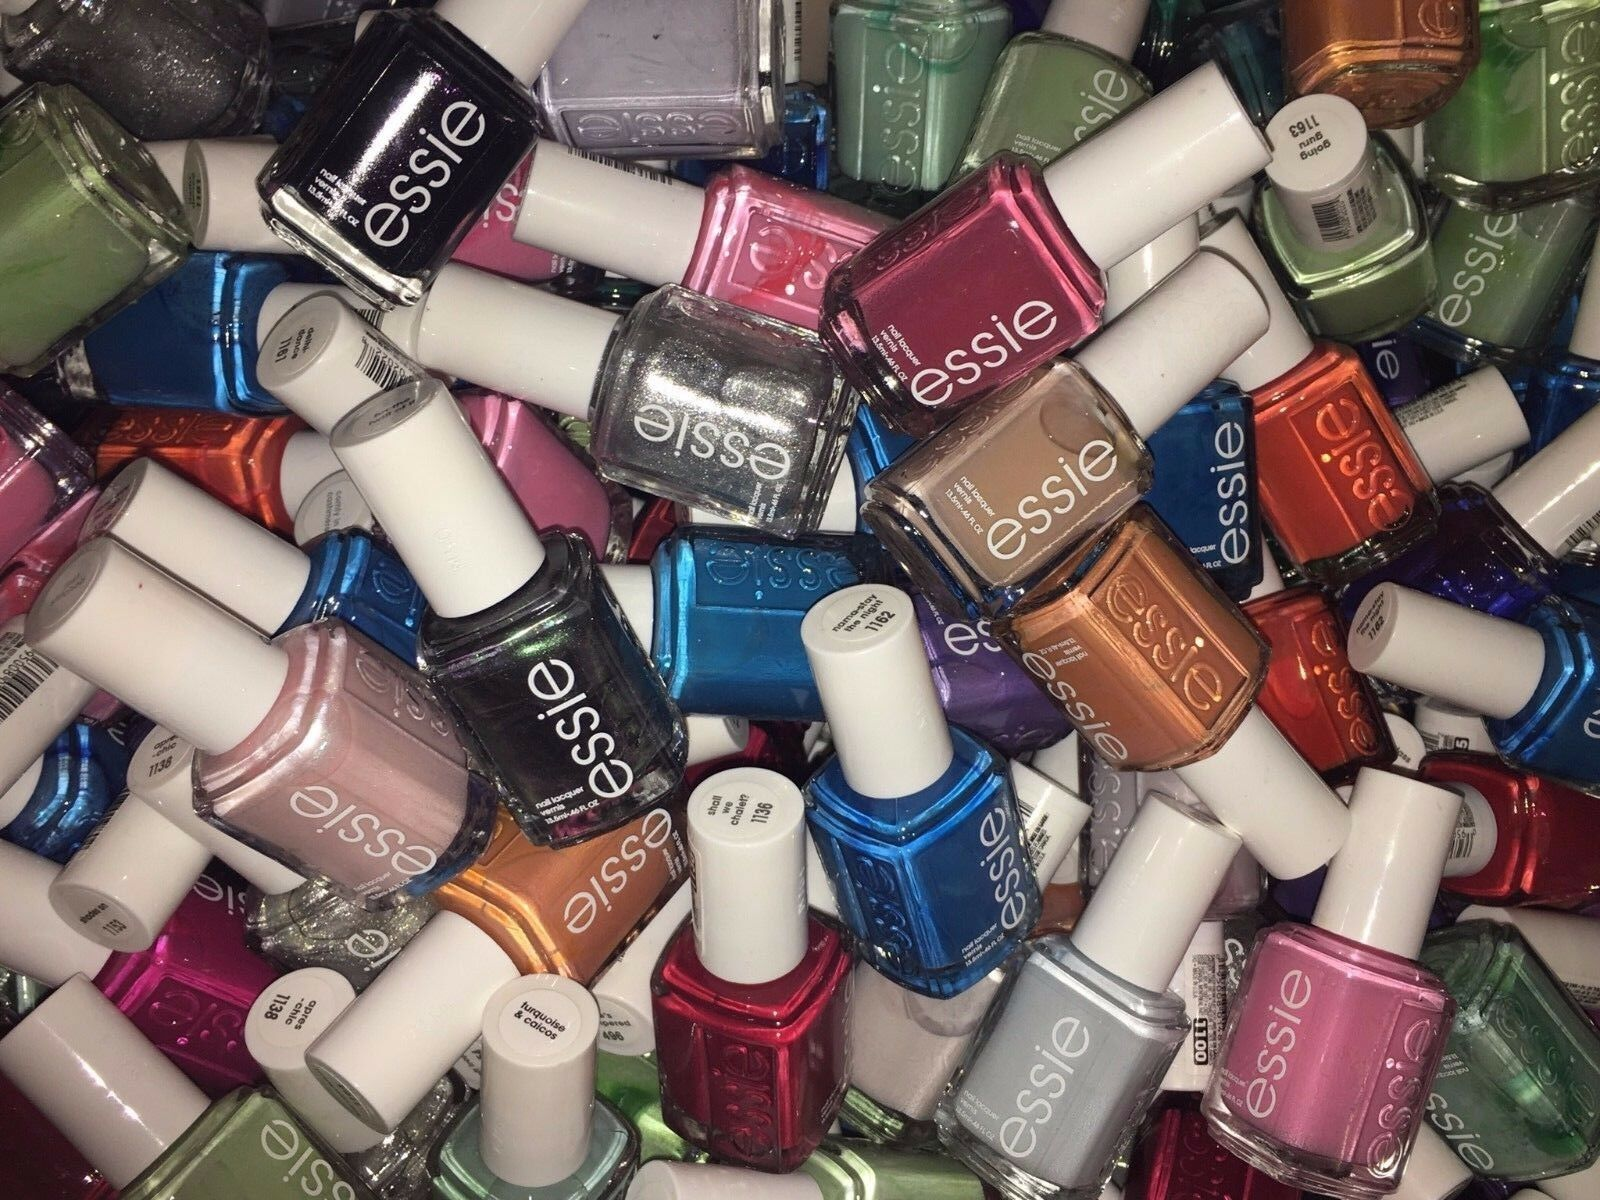 ESSIE NAIL POLISH, Lot Of 100 Full Size Bottles, Assorted Colors ...